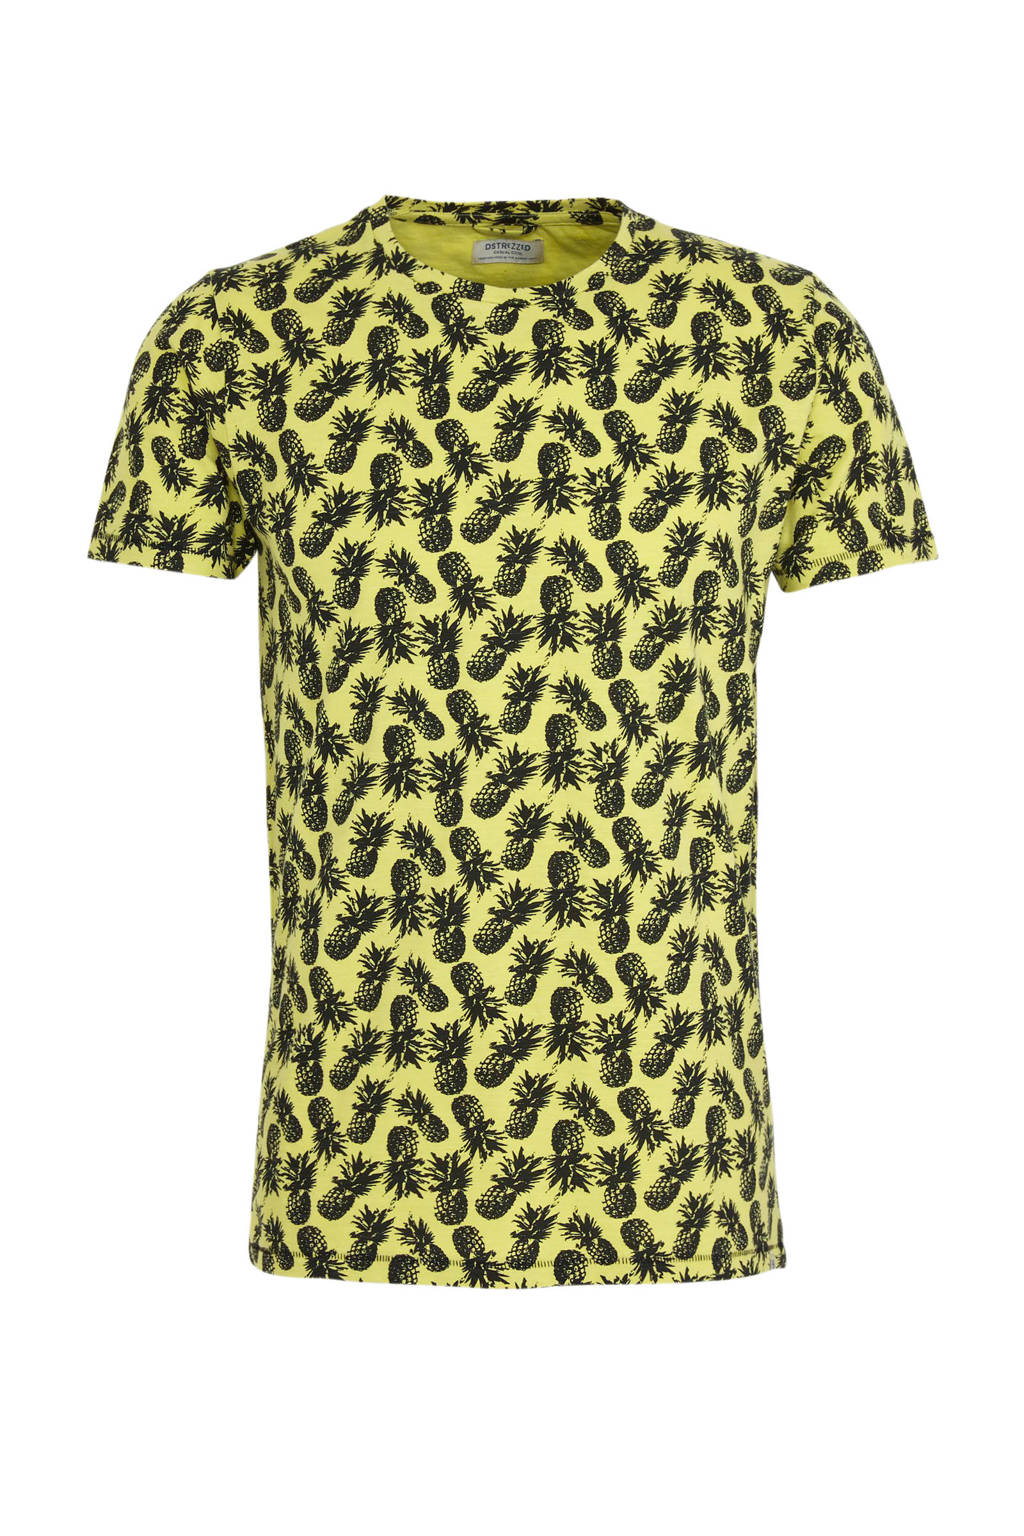 Dstrezzed T-shirt met all over print geel/zwart, Geel/zwart